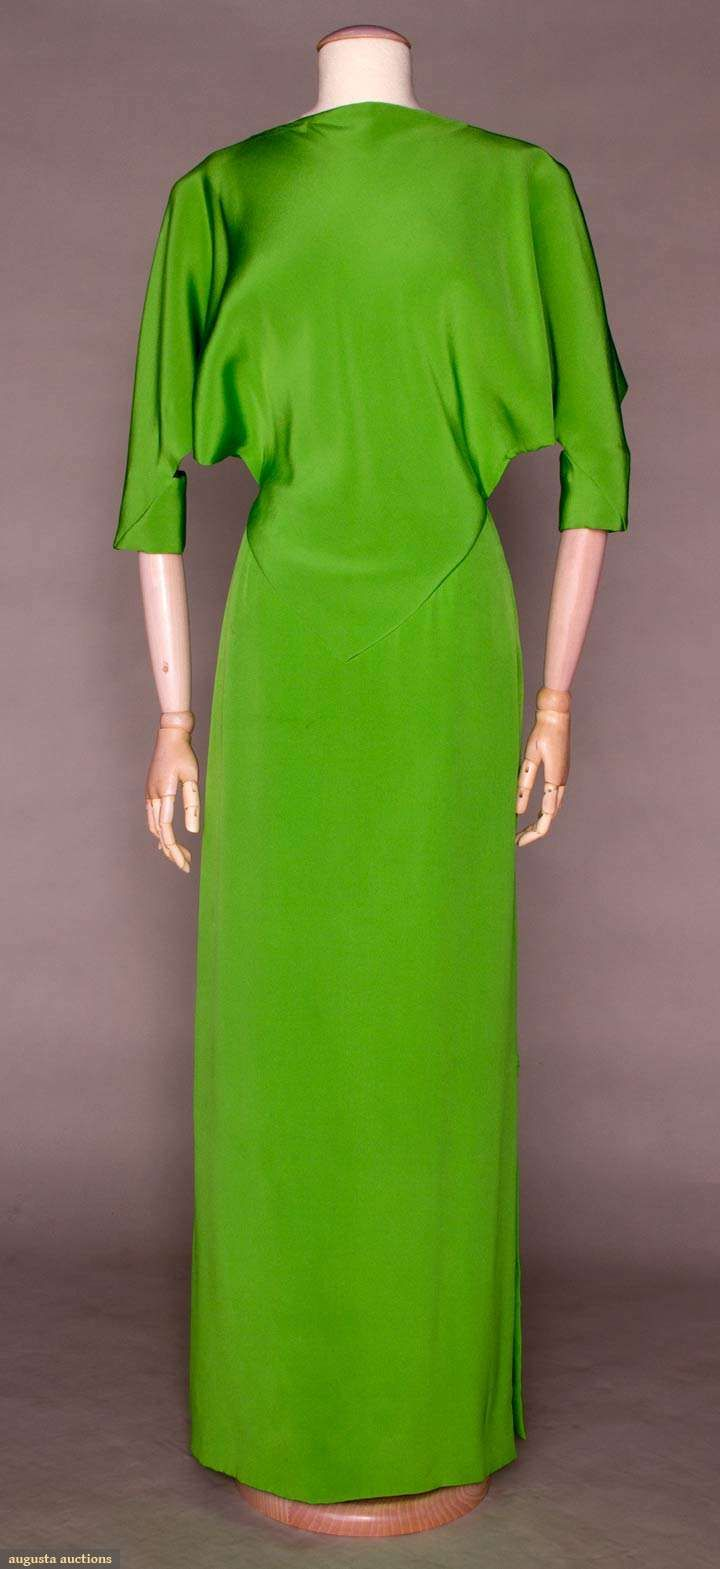 Augusta Auctions: gres spring green evening gown, 1972----why is it the designer's revive everything but GLAMOUR ?????